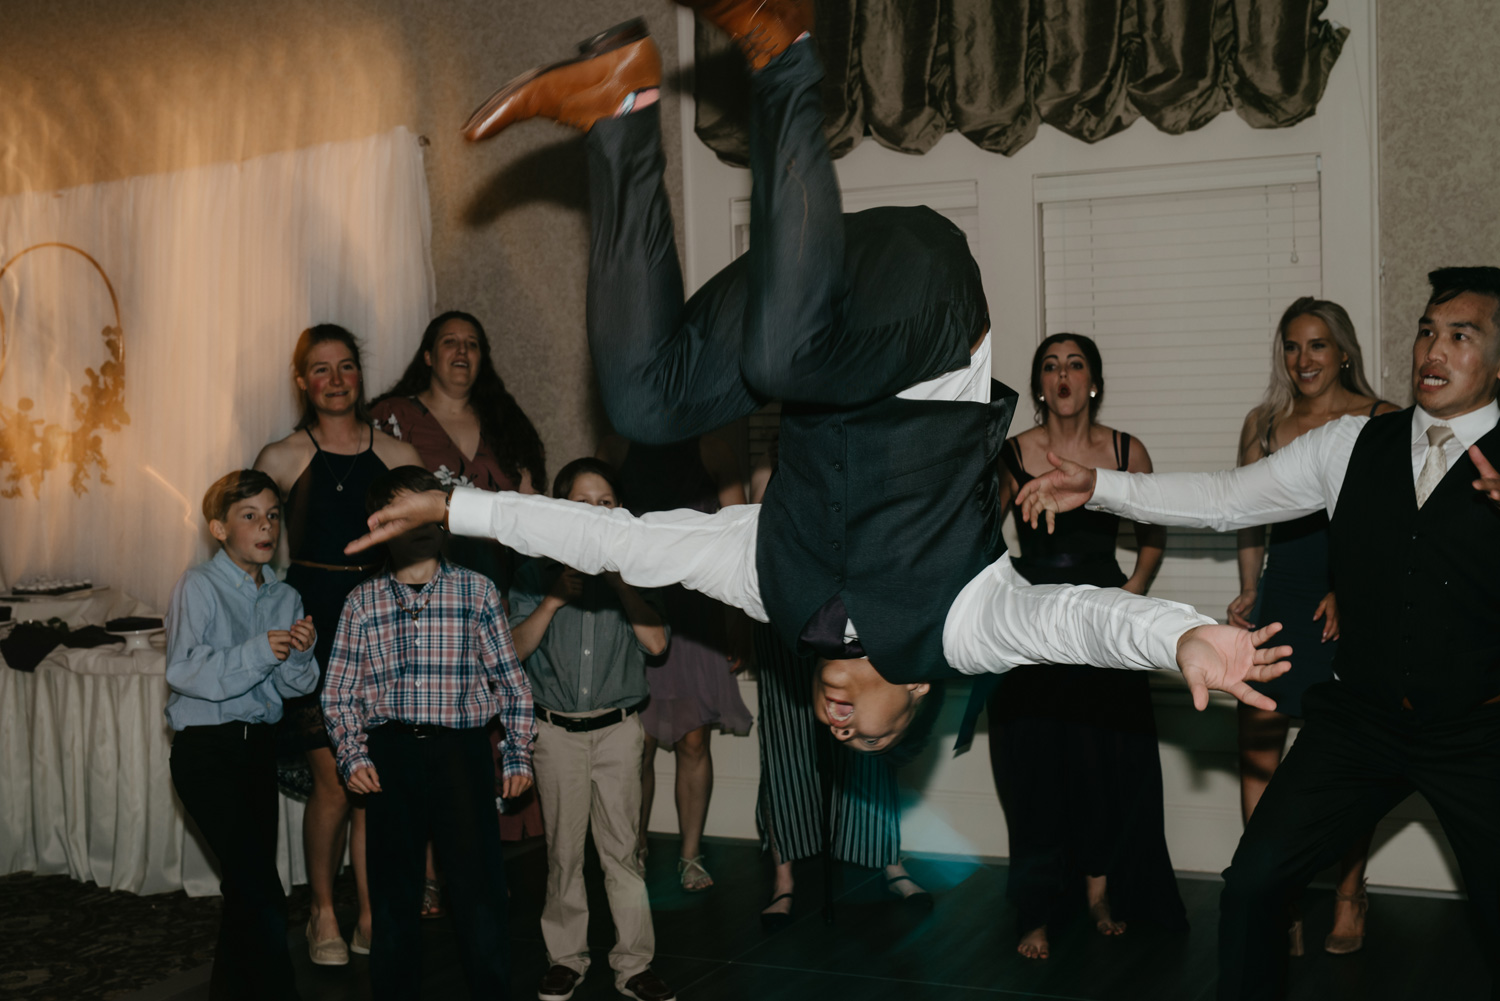 Guy doing backflip on wedding dancefloor